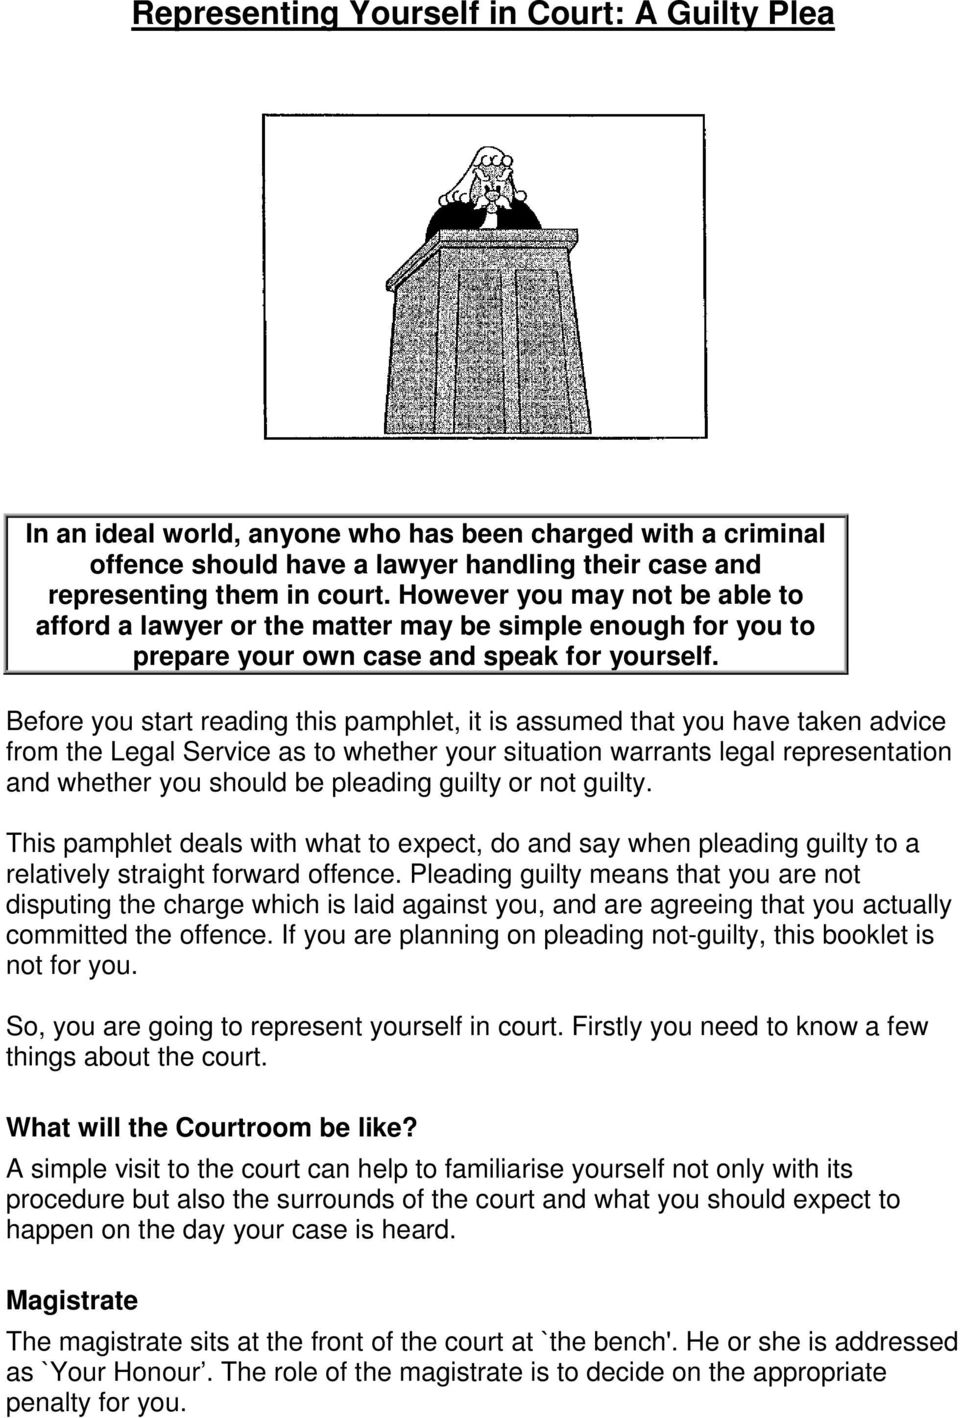 Before you start reading this pamphlet, it is assumed that you have taken advice from the Legal Service as to whether your situation warrants legal representation and whether you should be pleading